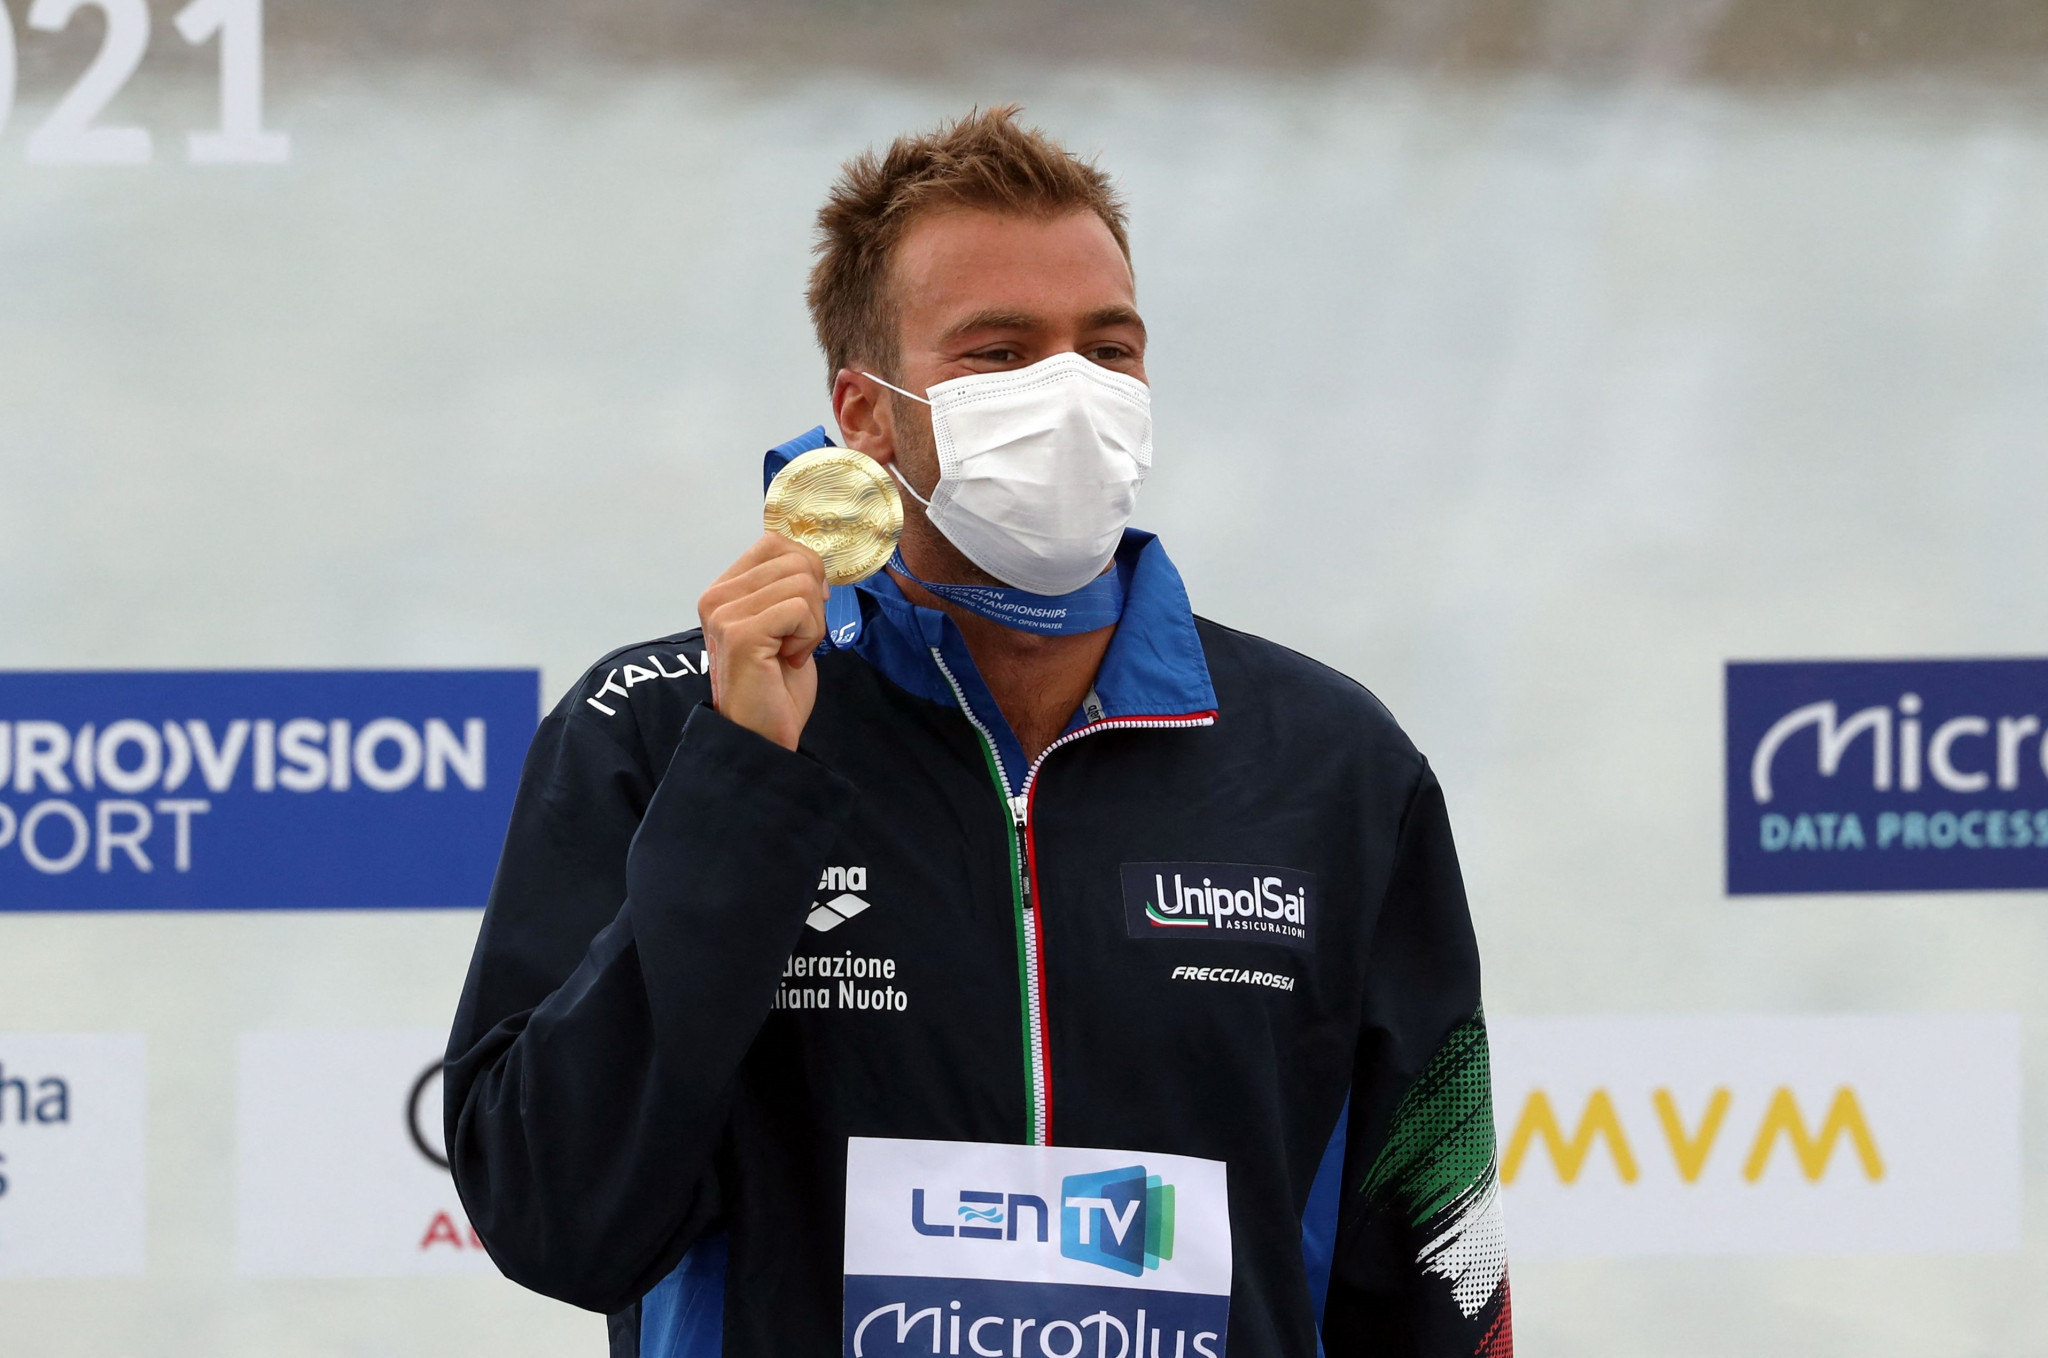 Gregorio Paltrinieri won the men's 5km race for a first major title in open water ©Getty Images